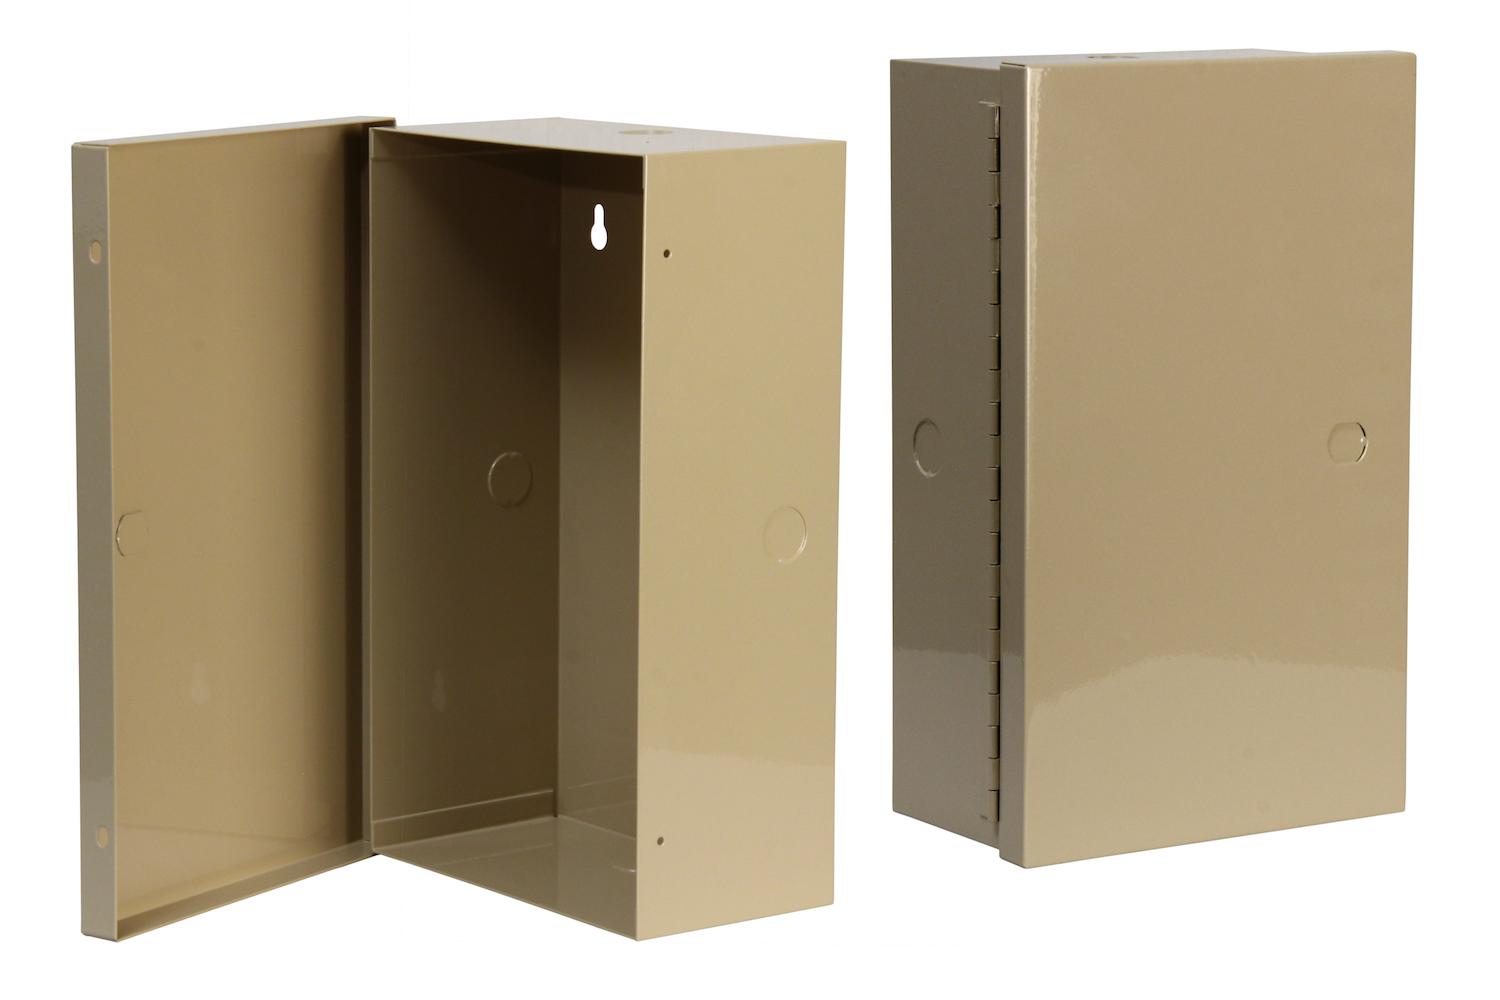 "#UC100-1 Utility Cabinet    Overall dimensions 7 x 12 x 4"" 20 ga steel / individual weight 2 lbs Gloss beige powder coating"